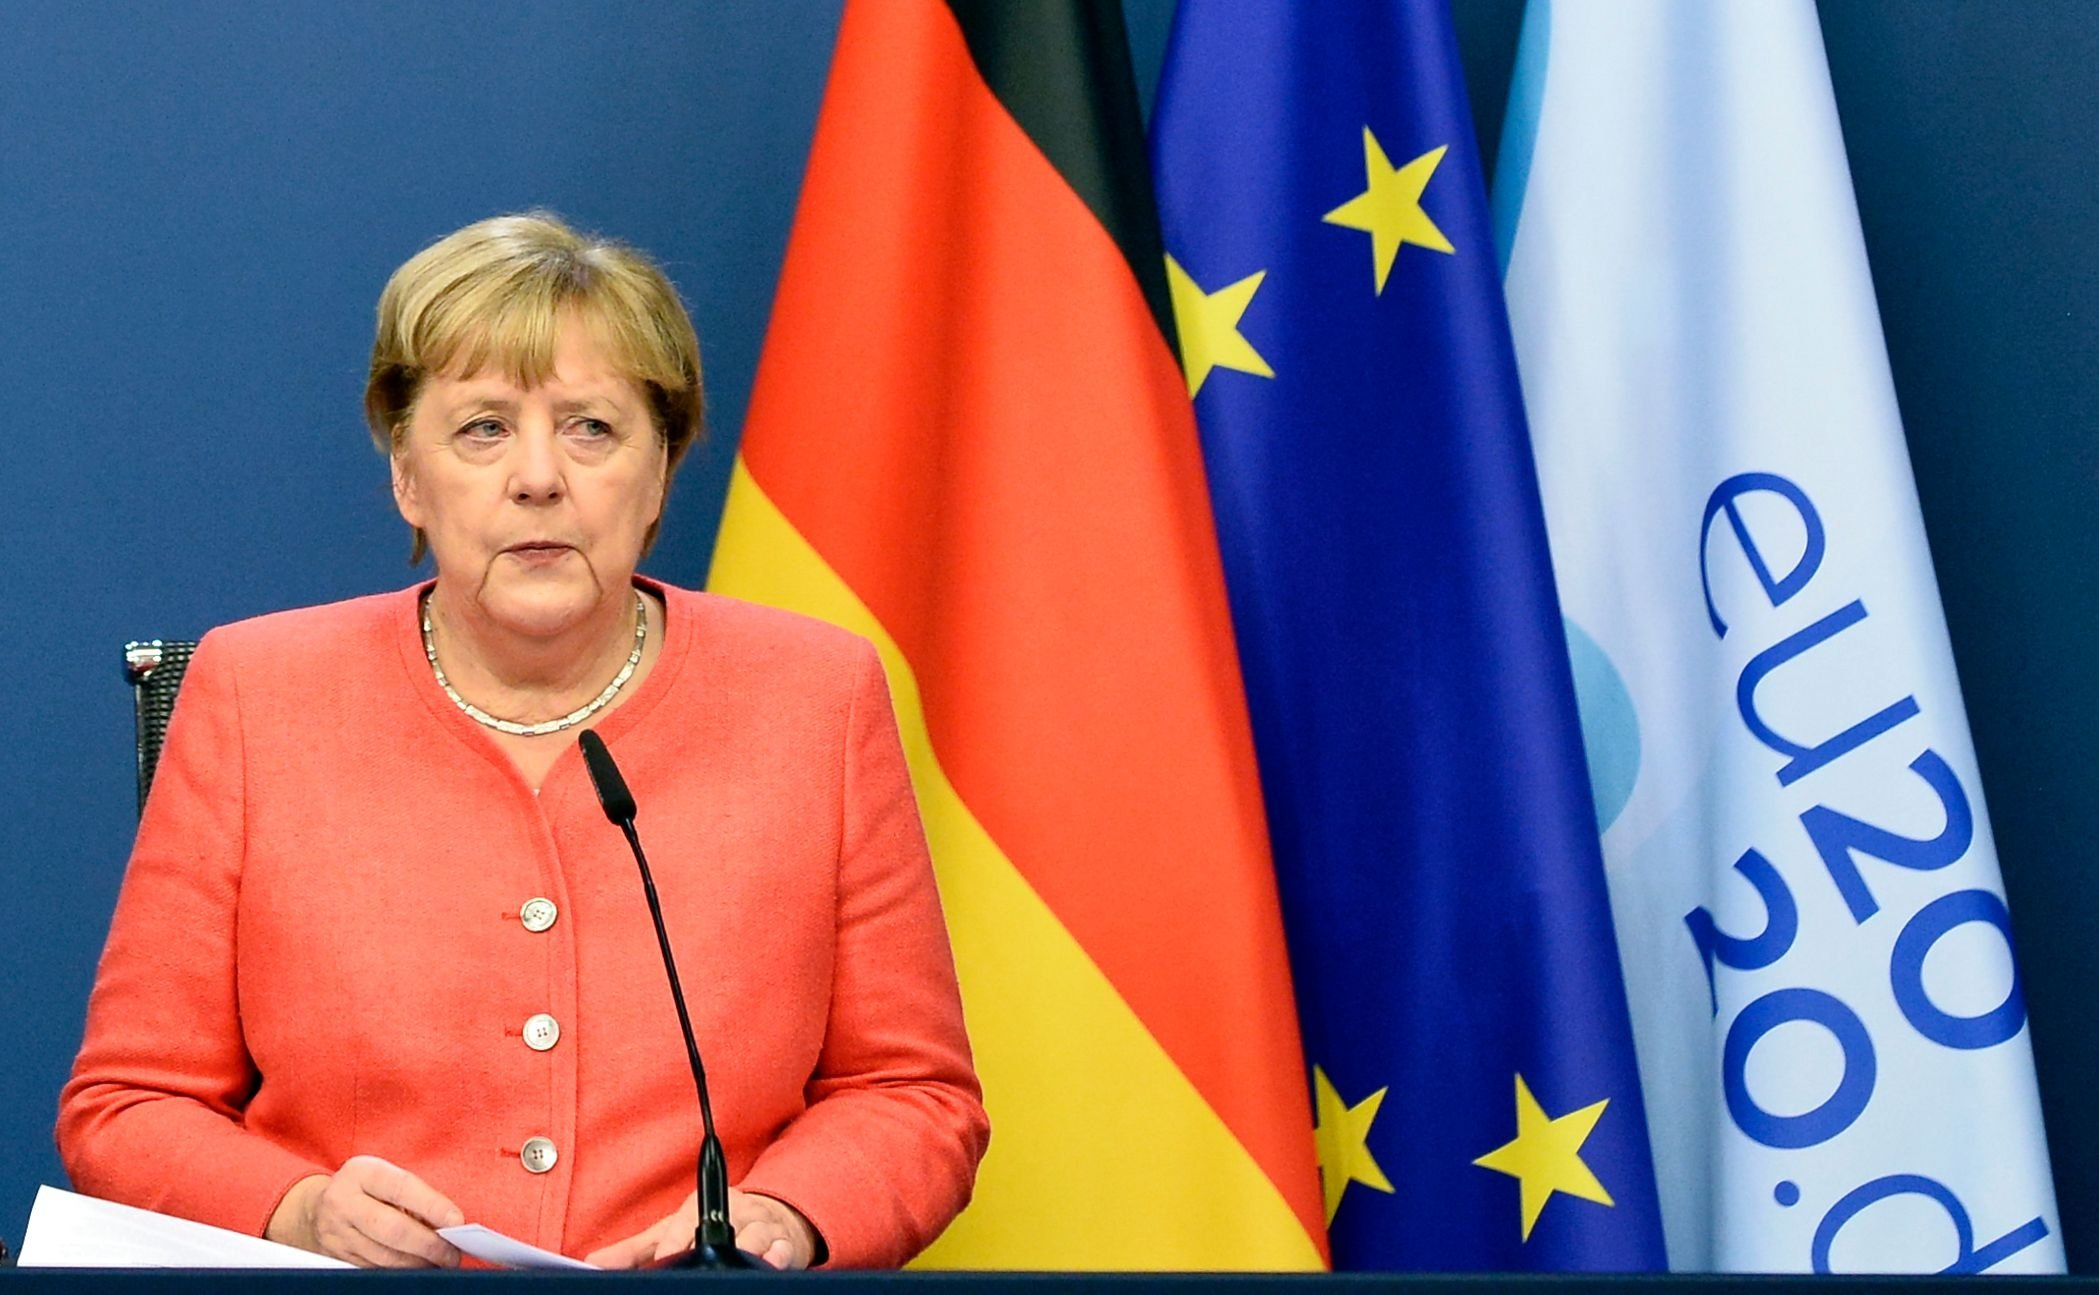 Germany's Chancellor Angela Merkel speaks at a press conference on the second day of a European Union (EU) summit at The European Council Building in Brussels, Oct. 2, 2020.  (AFP)